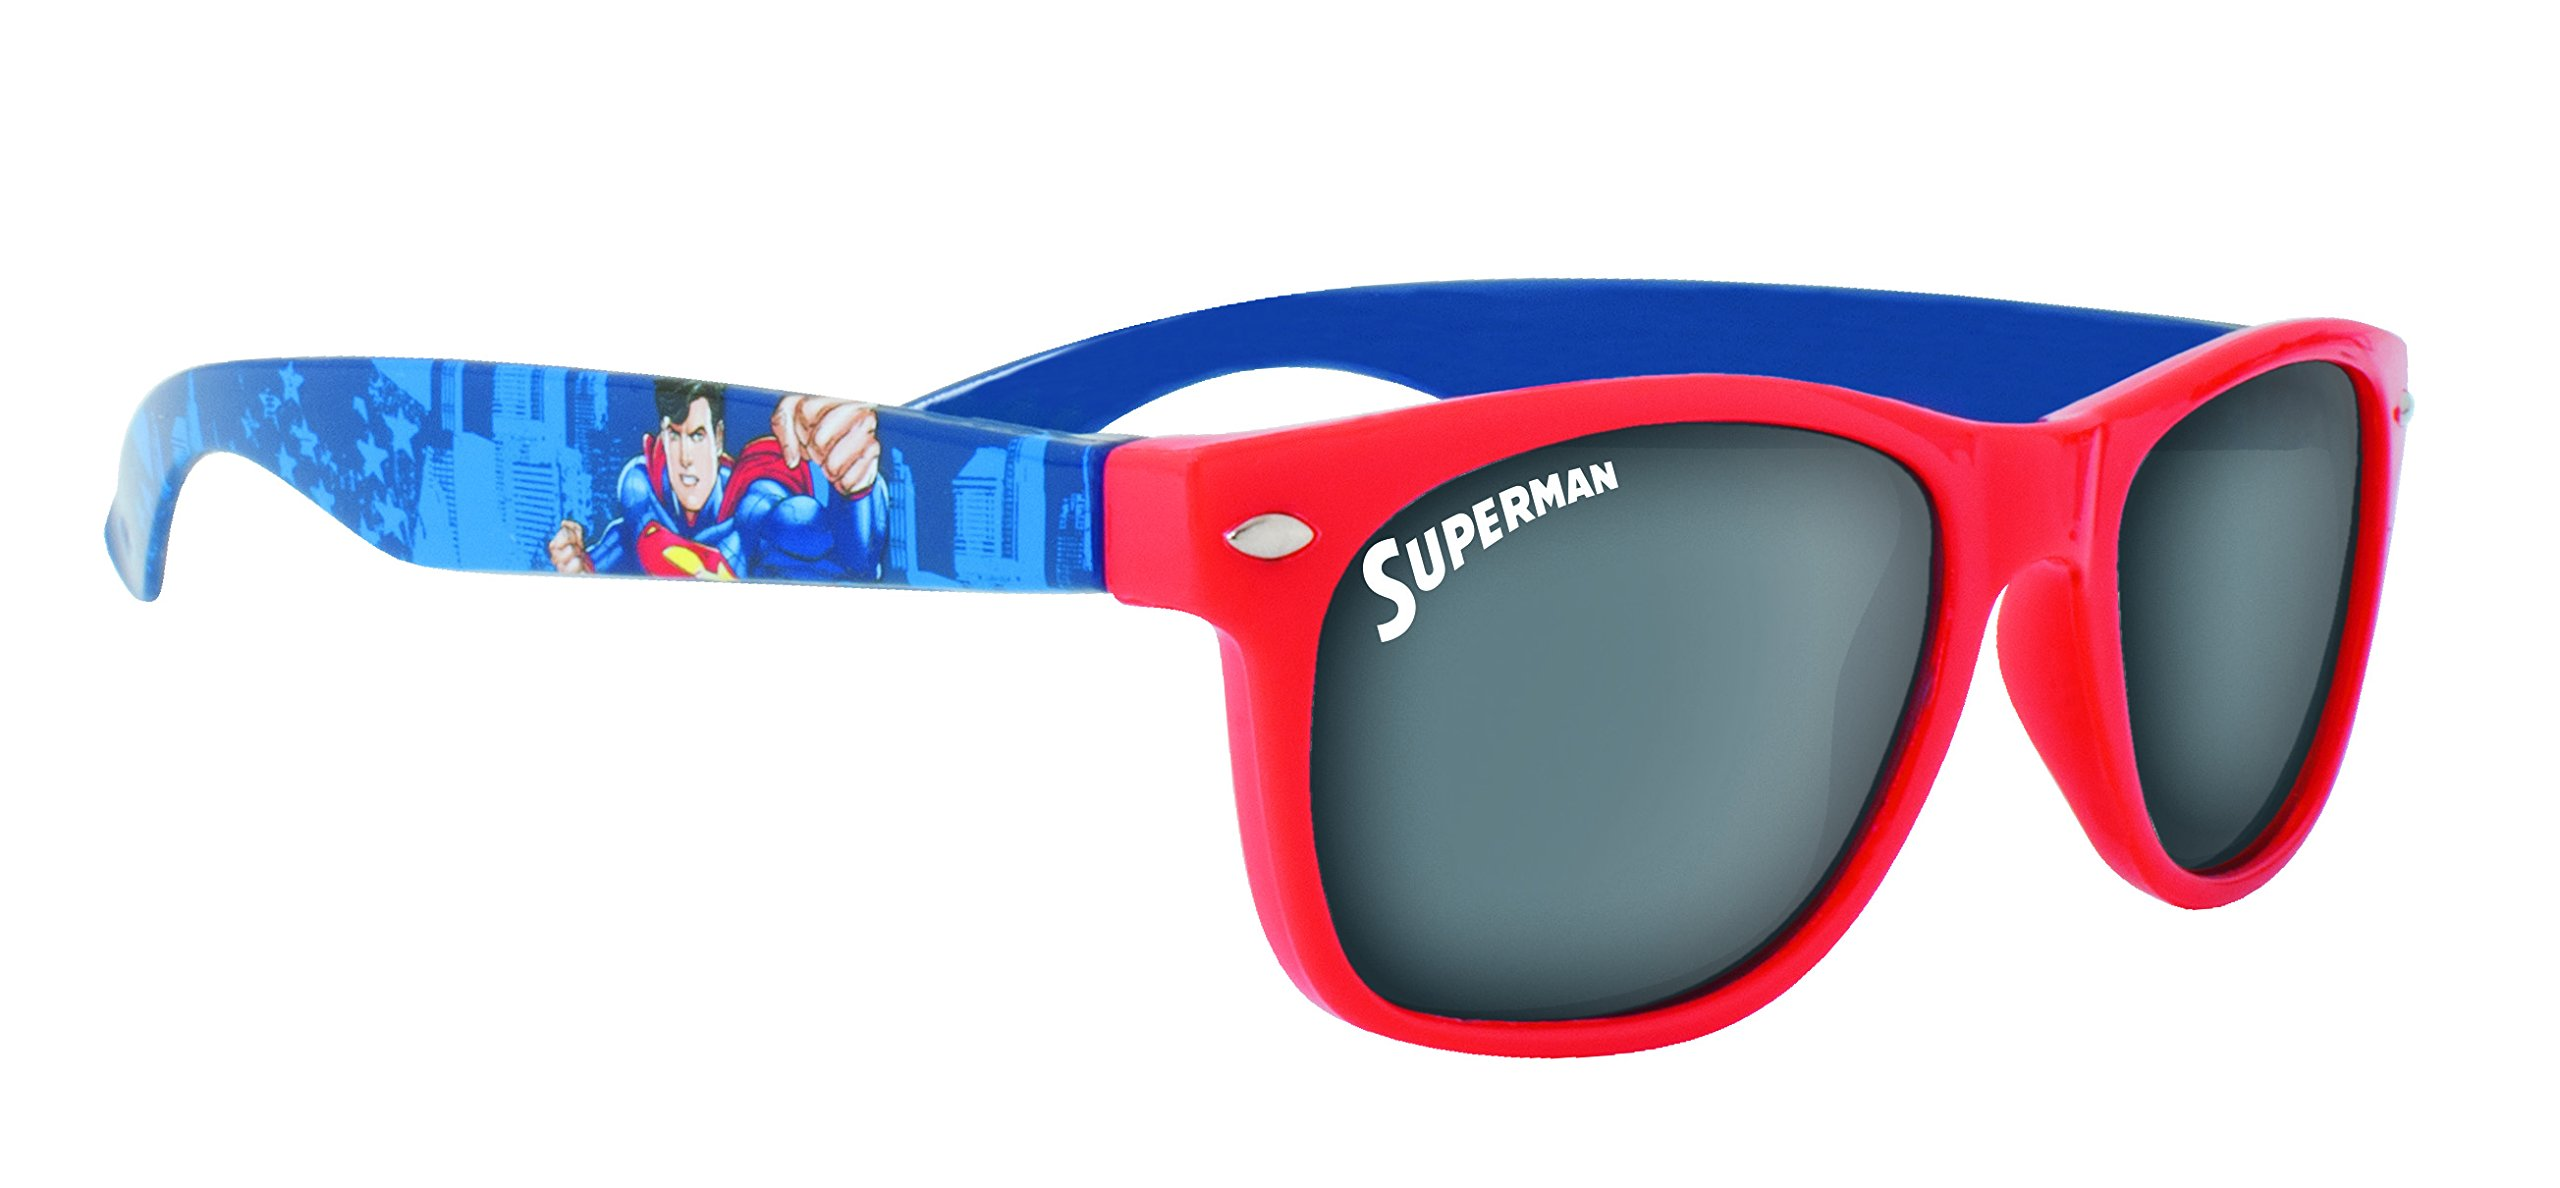 Superman Children's Red and Blue Plastic Sunglasses